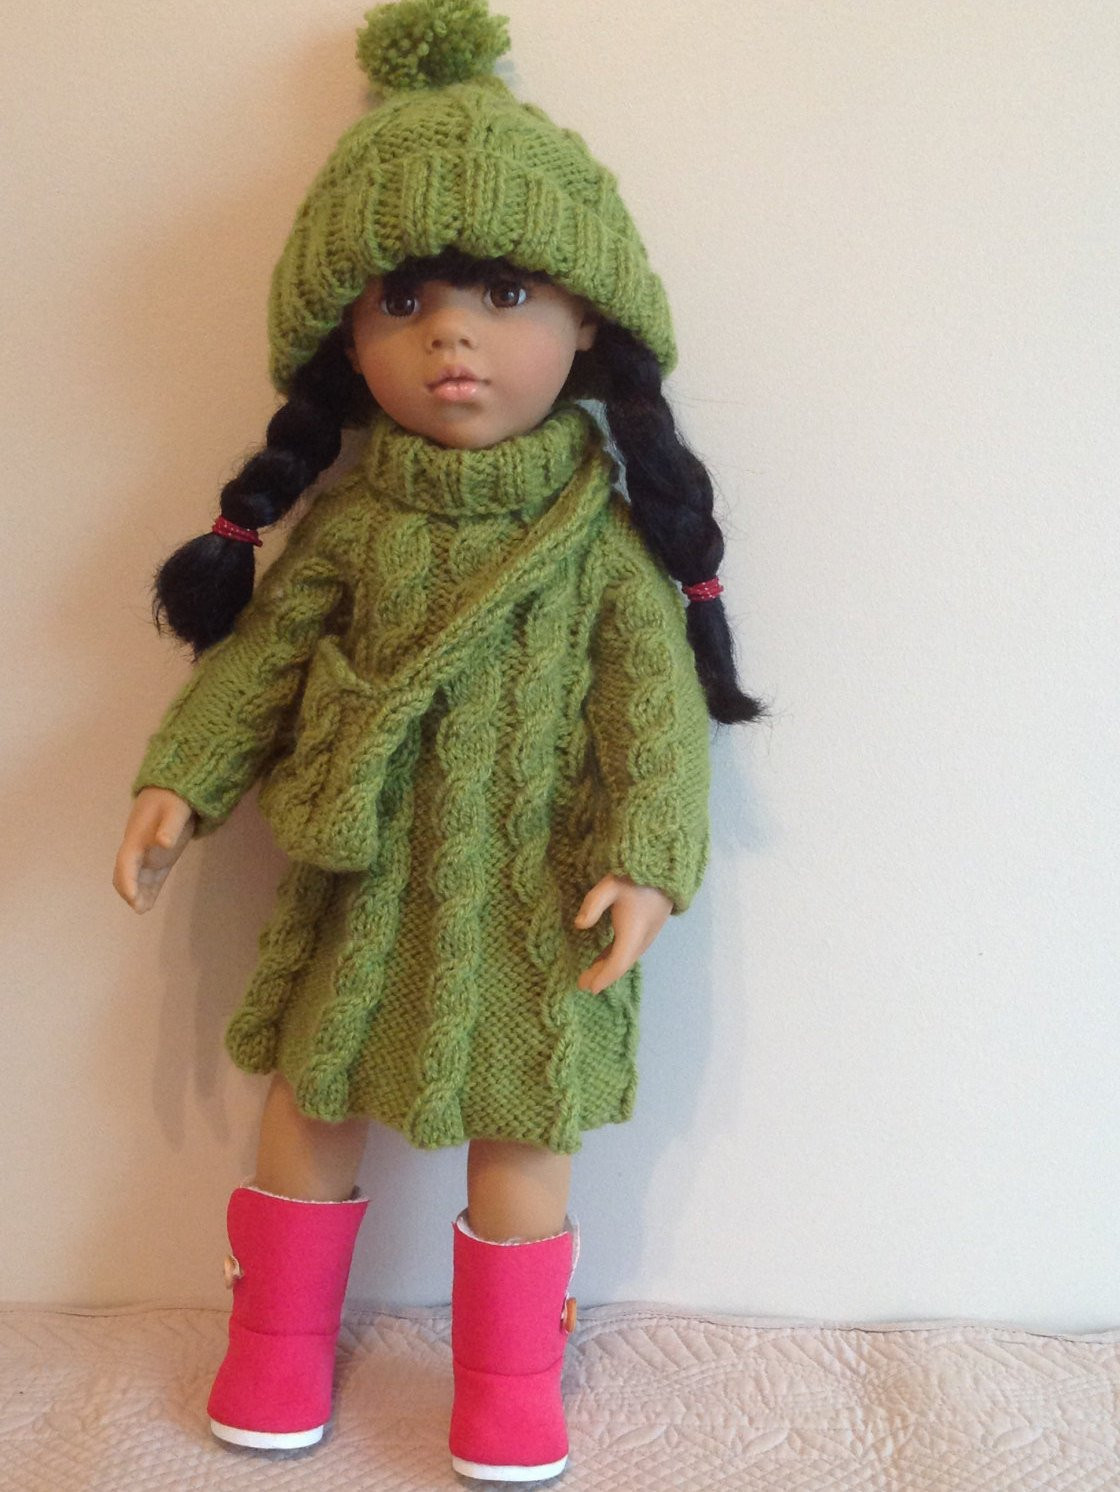 Doll Patterns New Dolls Fashion Clothes Knitting Pattern 18 Doll Will Of Doll Patterns Best Of Rag Doll Patterns